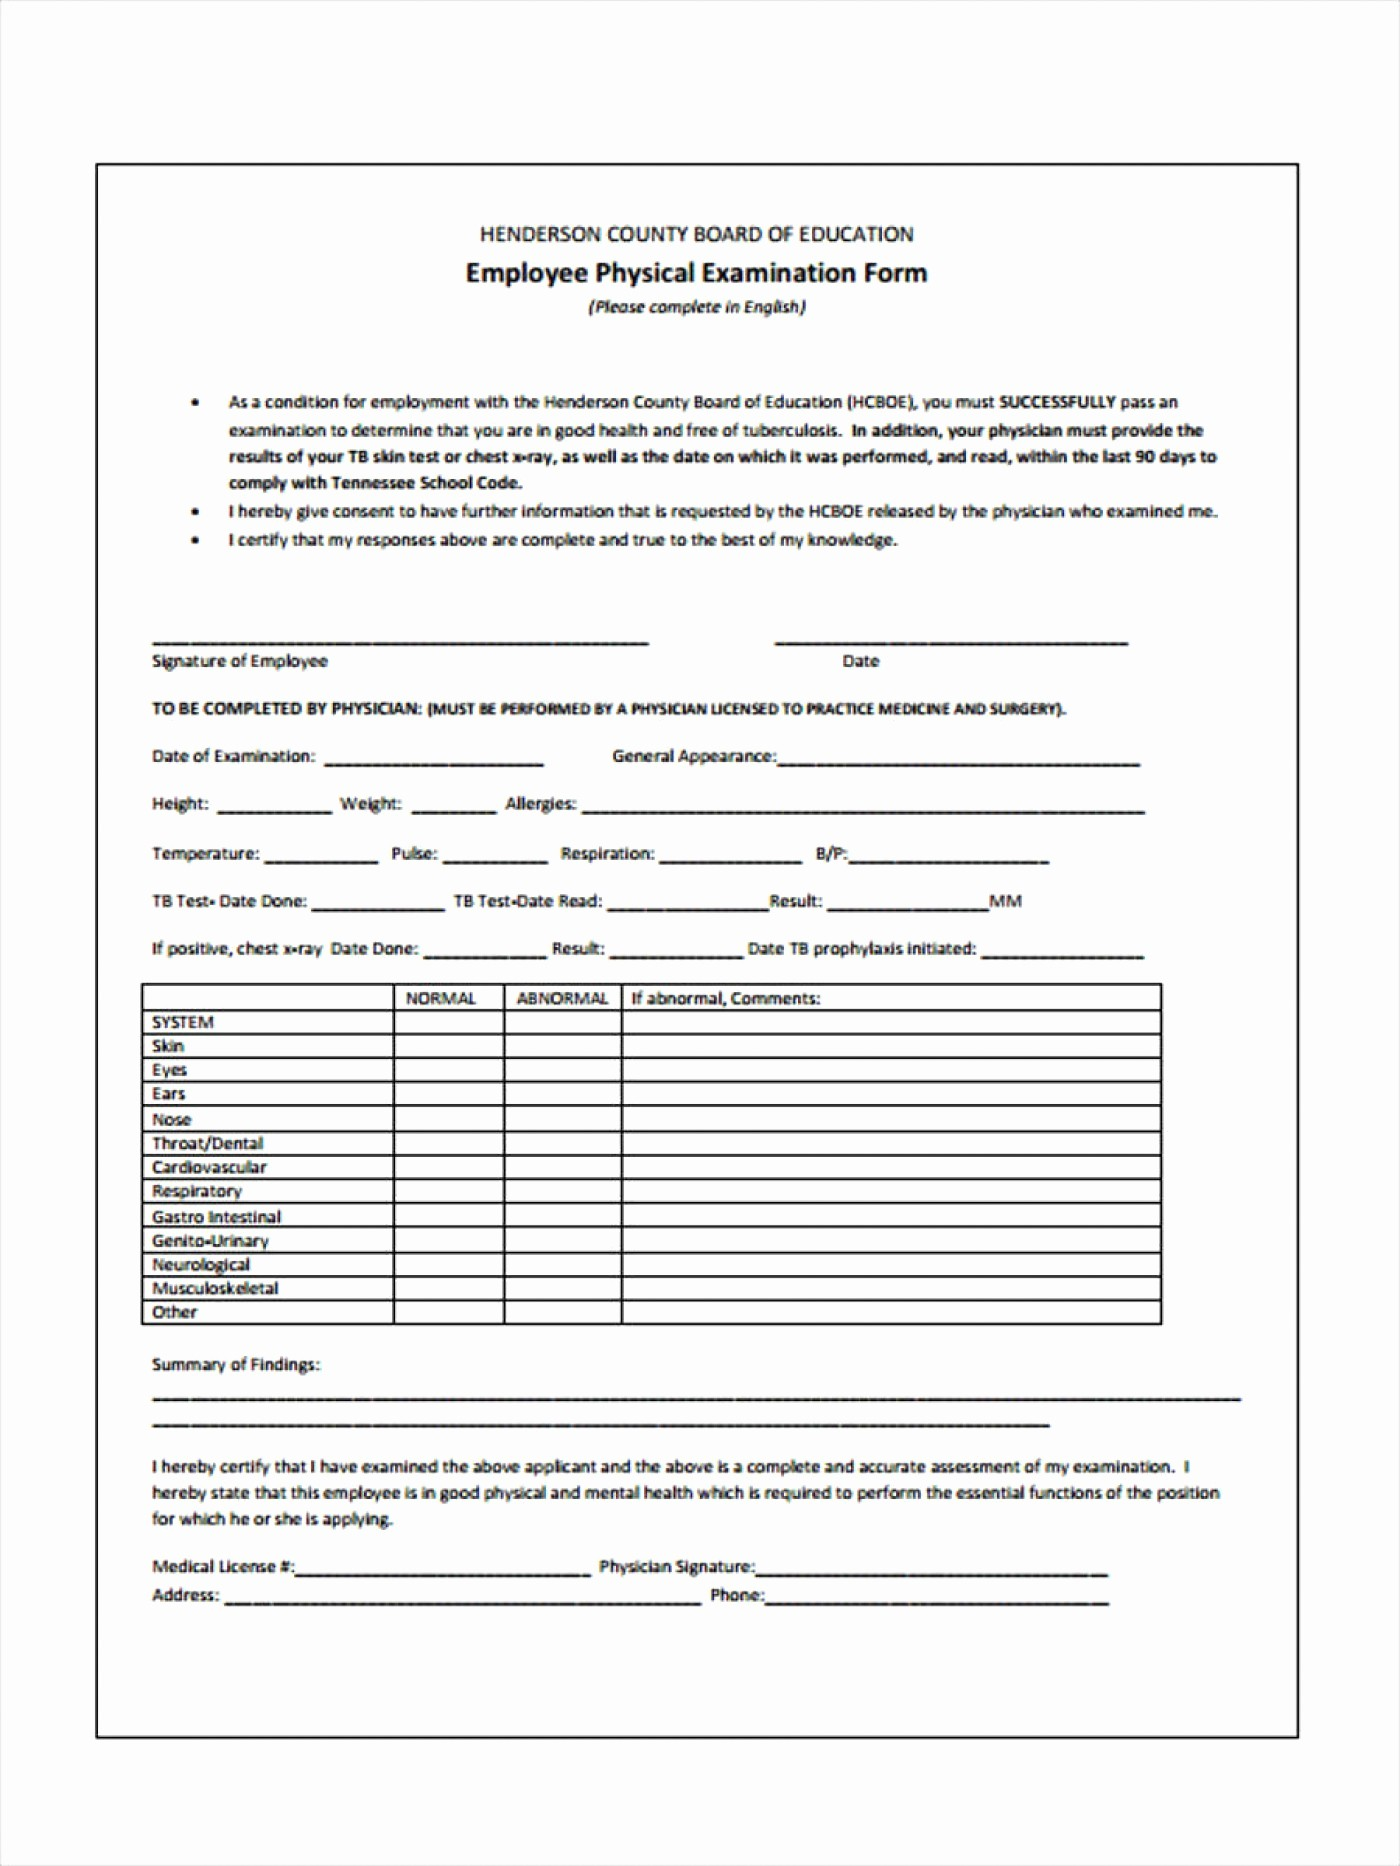 Employee Physical Exam form Template Luxury Veterinary Physical Exam form Template – Radiofama